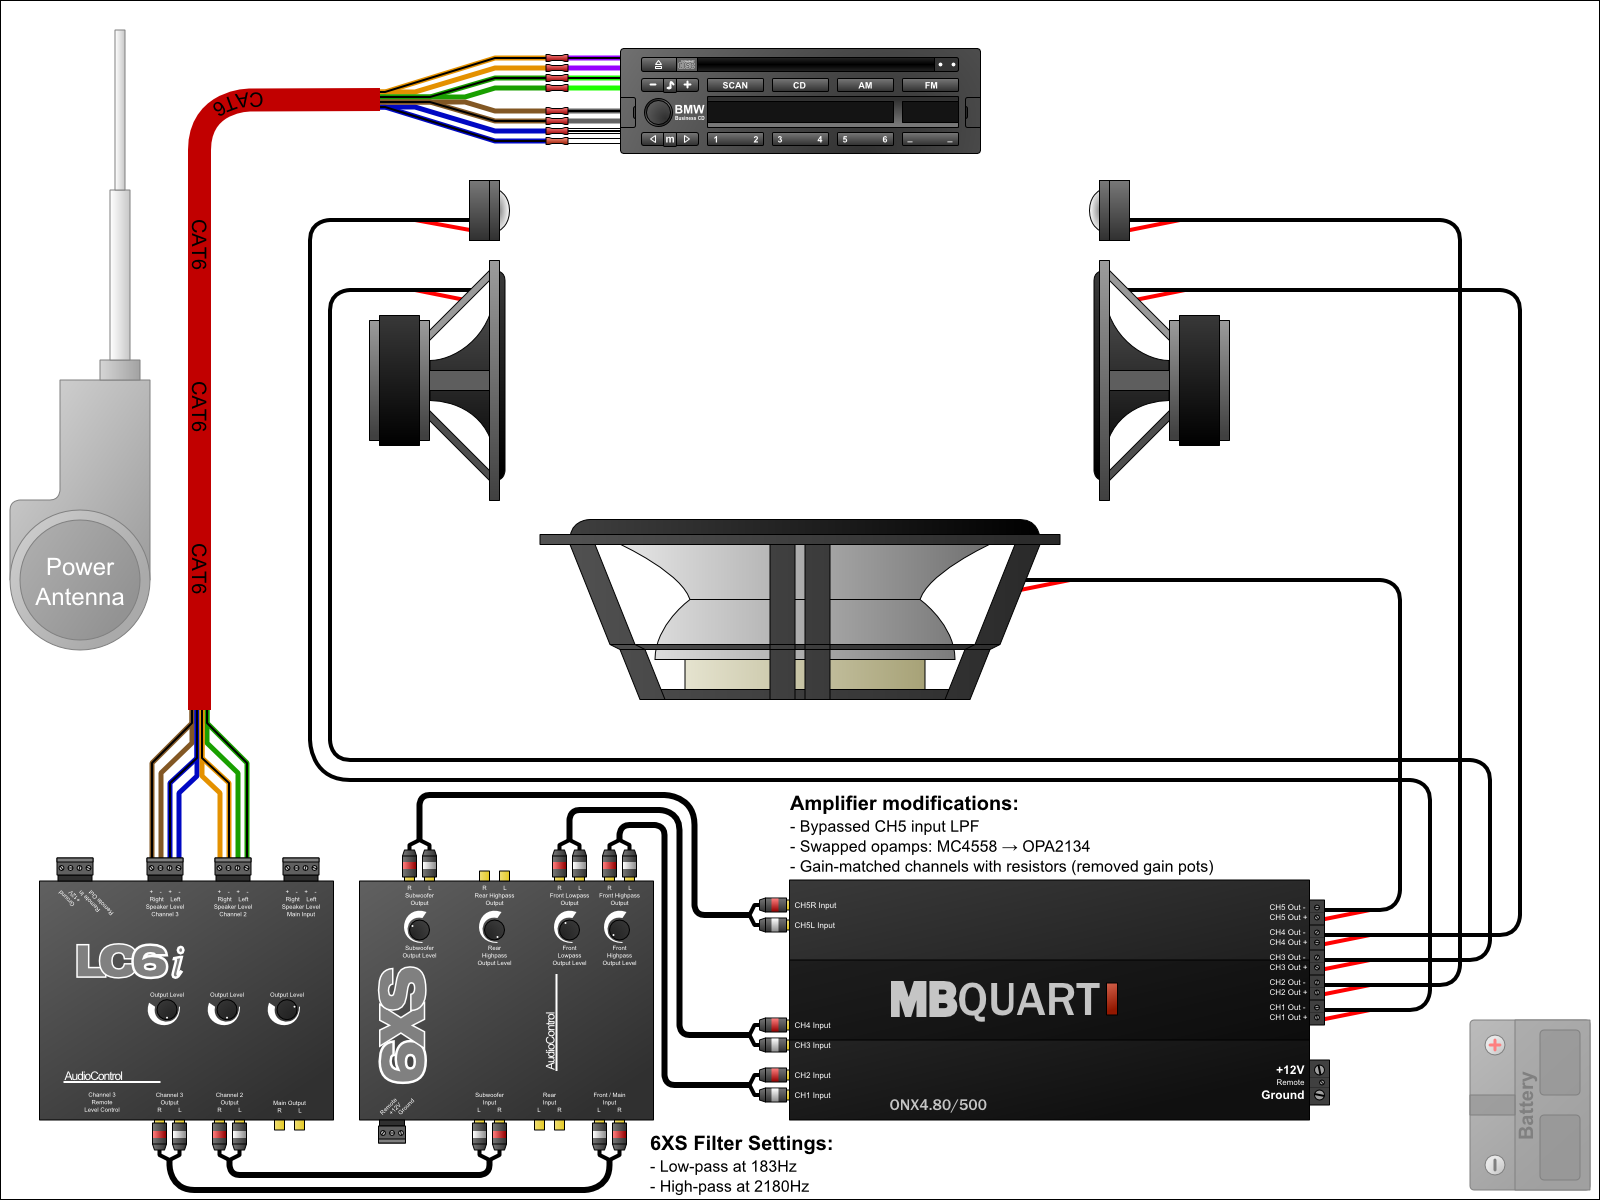 Sound System Wiring Diagram : Simple car sound system diagram imgkid the